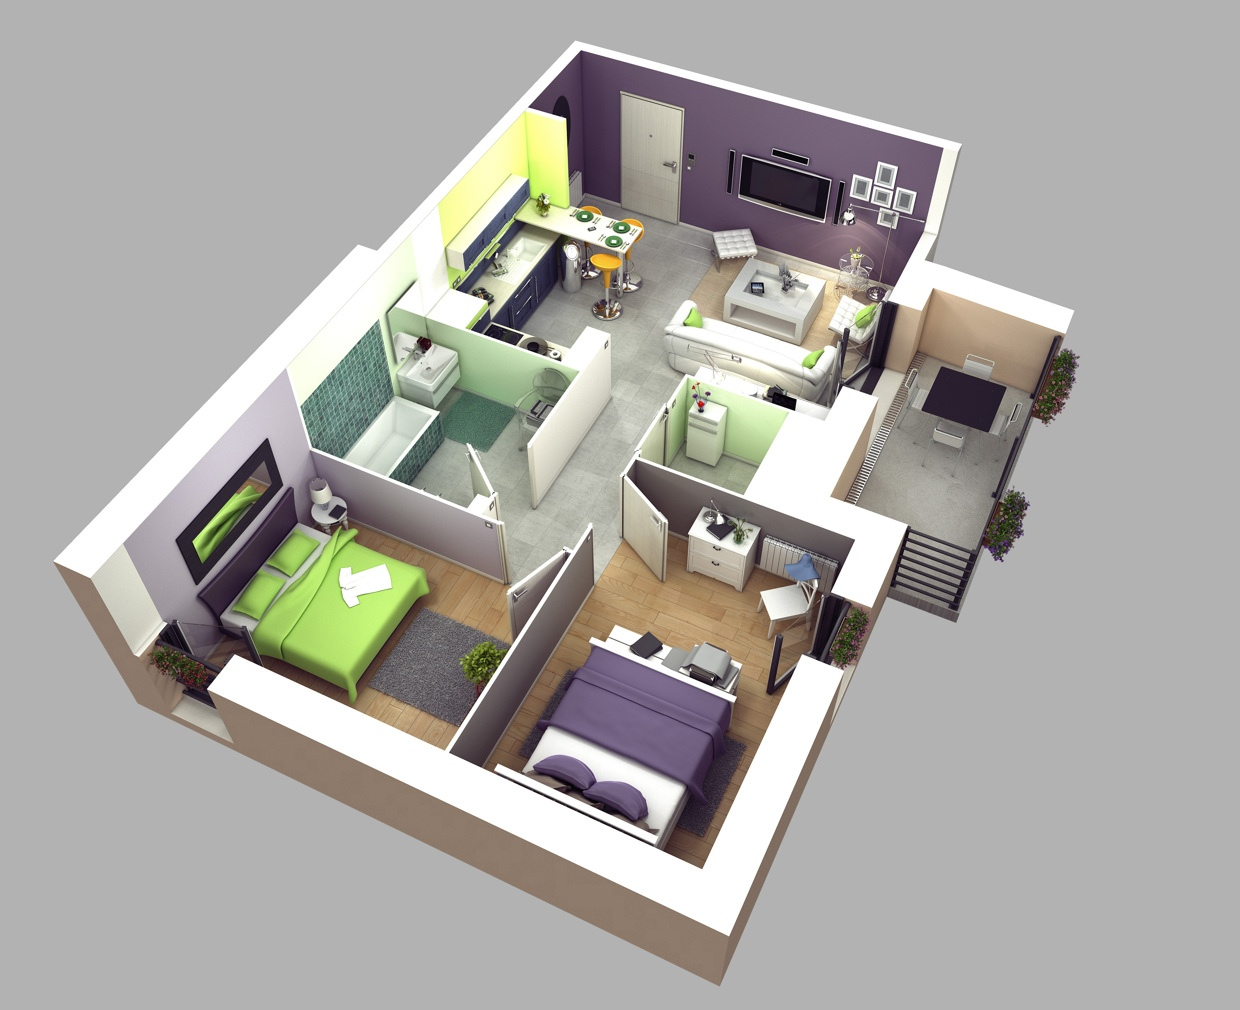 50 3d floor plans lay out designs for 2 bedroom house or House plan 3d view